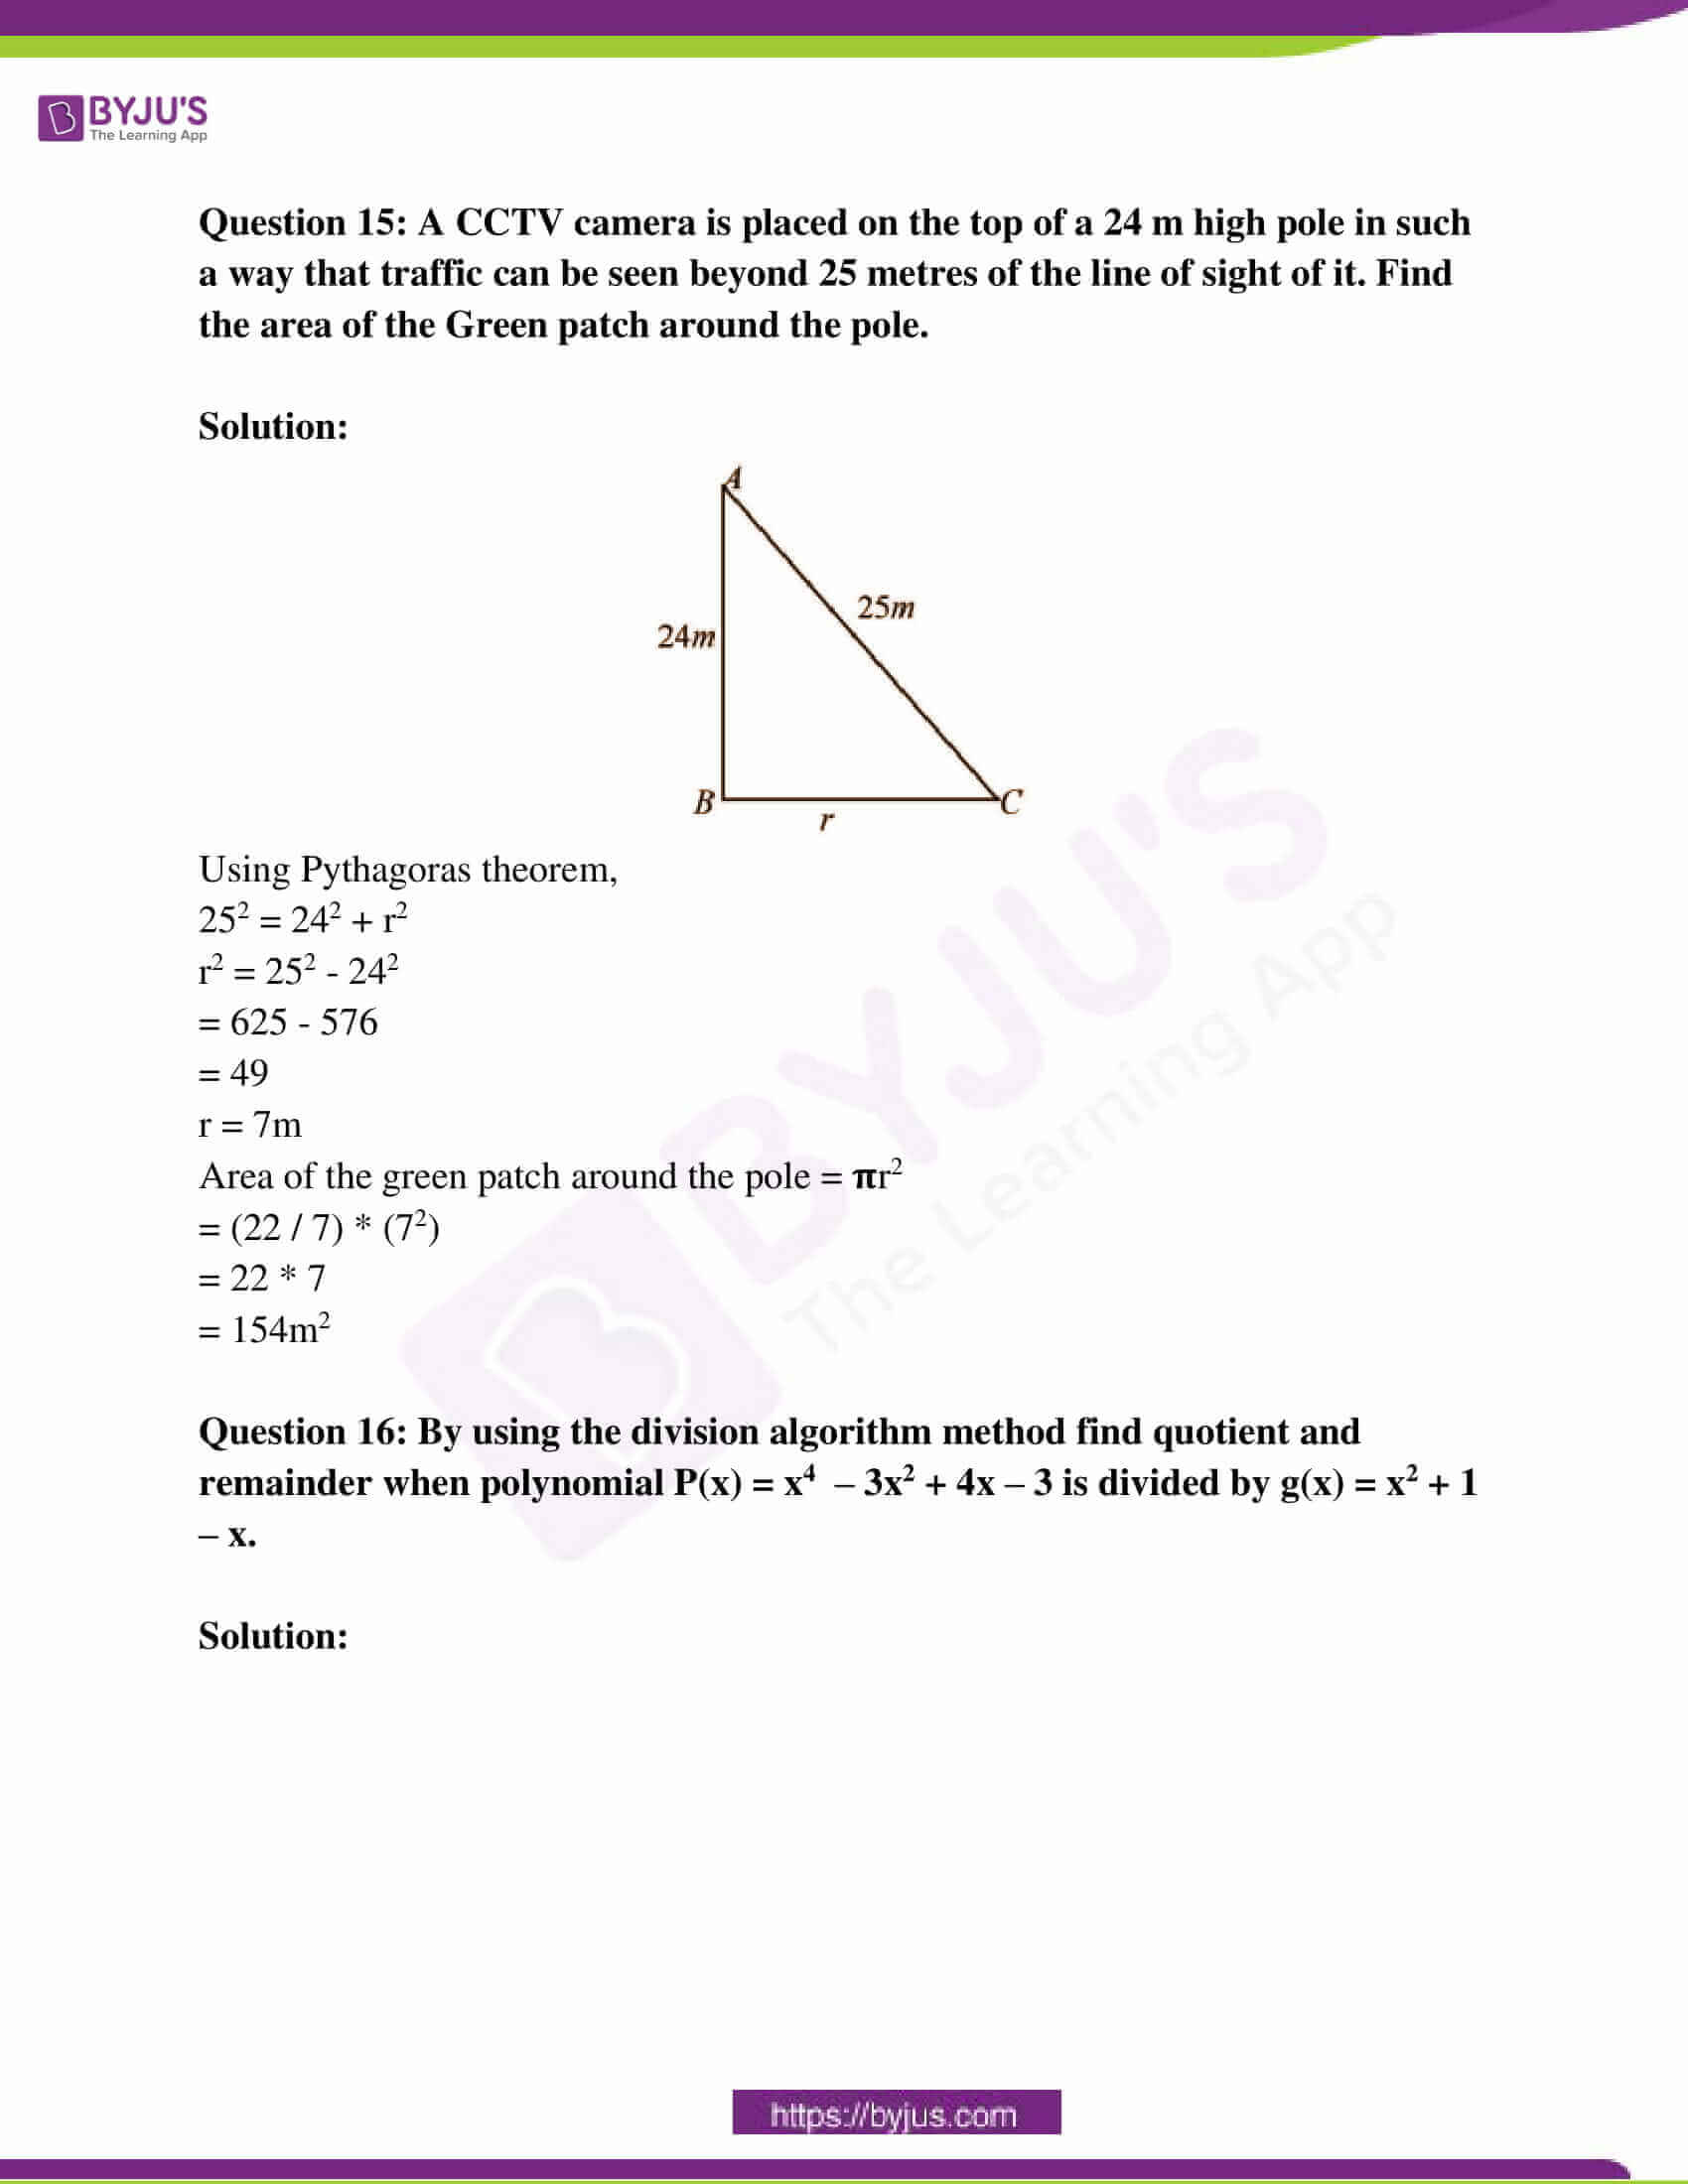 rajasthan board class 10 examination question paper sol march 2018 07